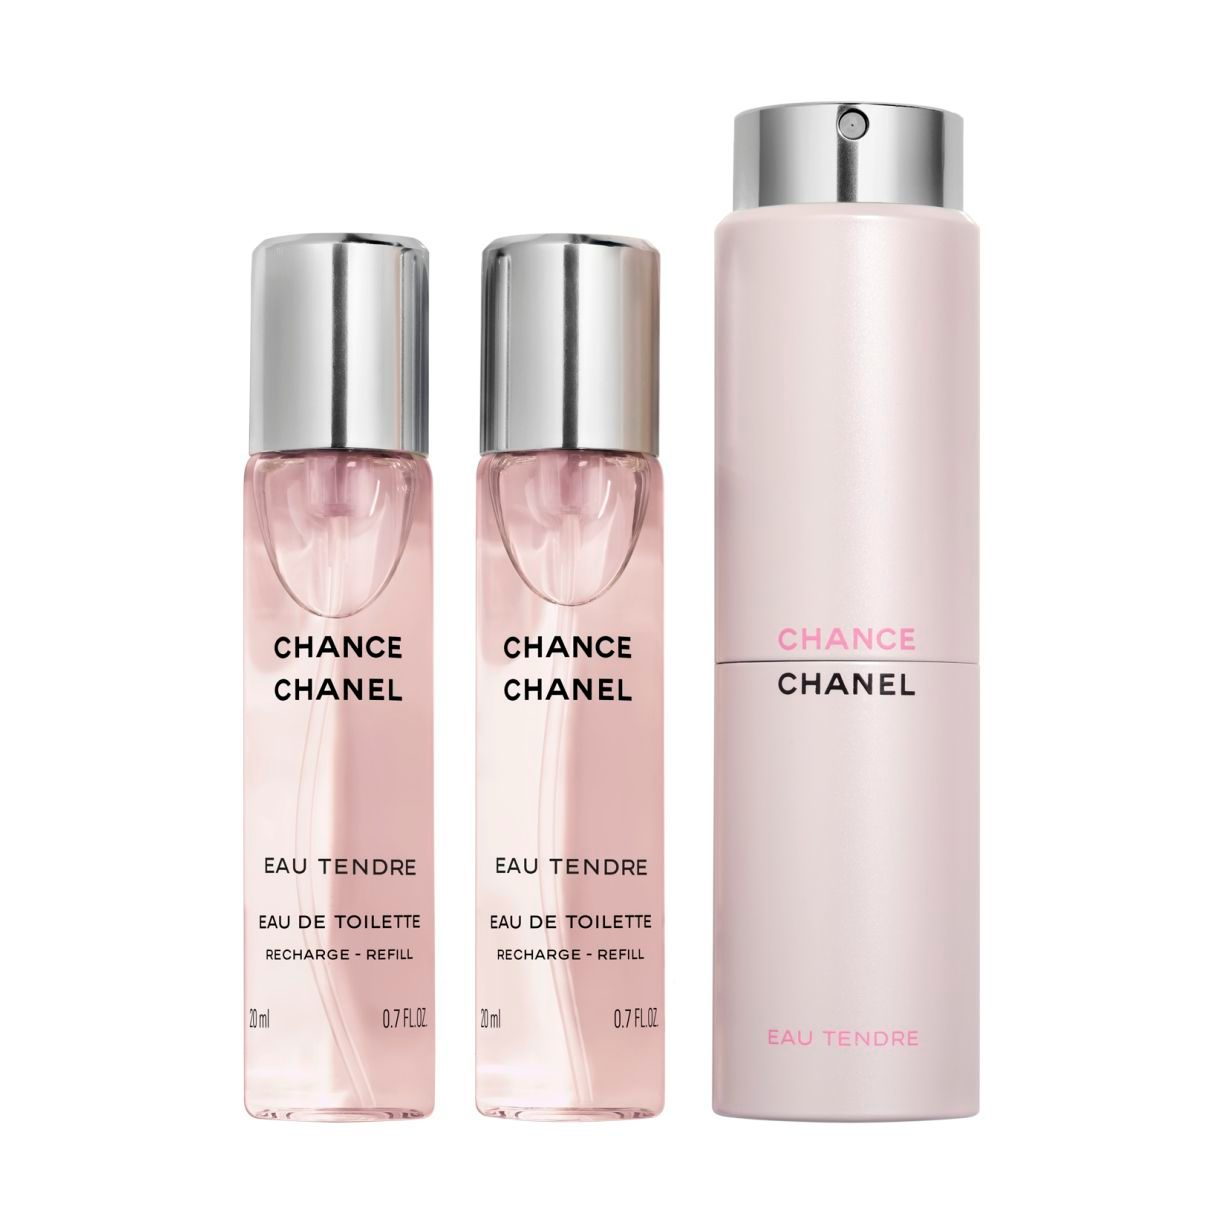 CHANCE EAU TENDRE EAU DE TOILETTE TWIST AND SPRAY 3x20ml